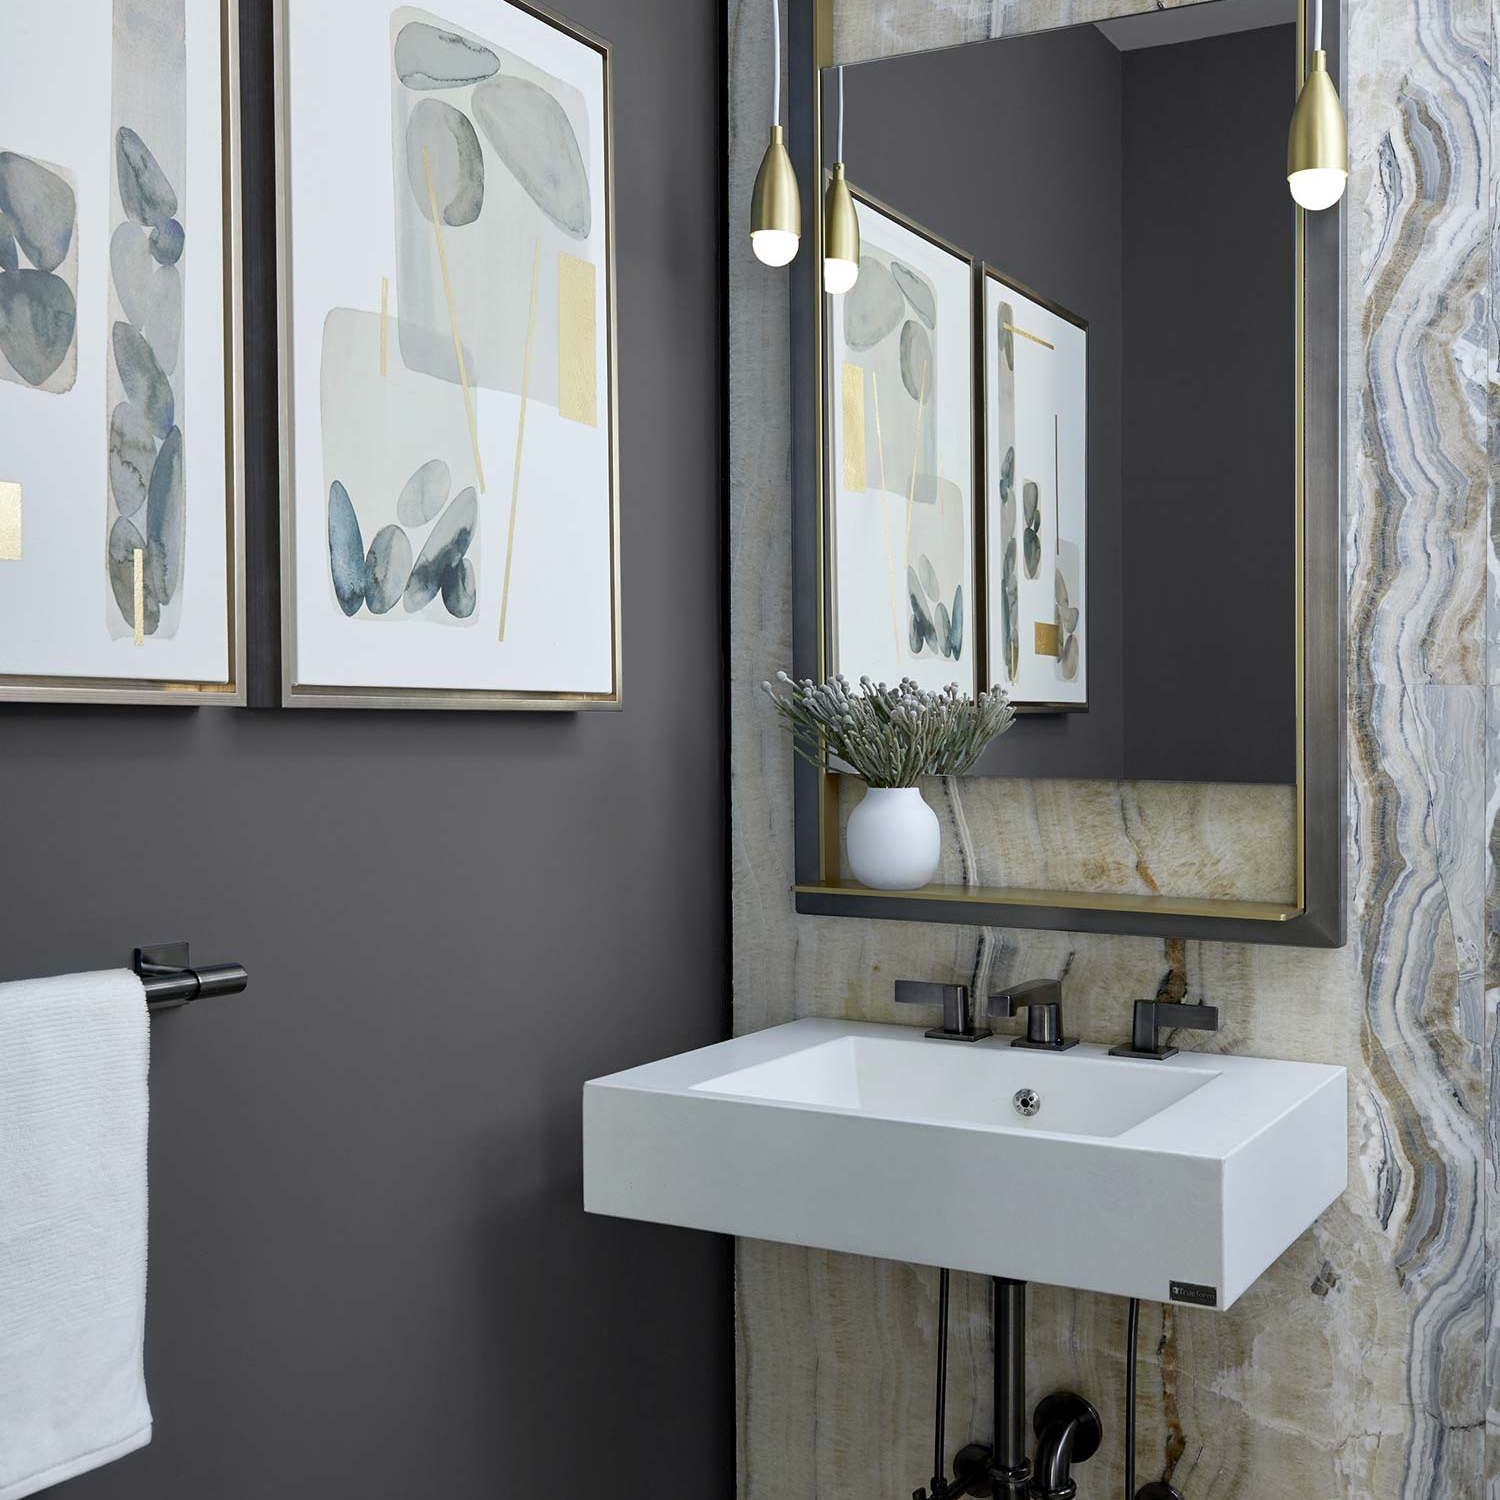 Powder room design with modern brass pendants, warm-toned natural stone, deep-toned walls, and organic-inspired artwork